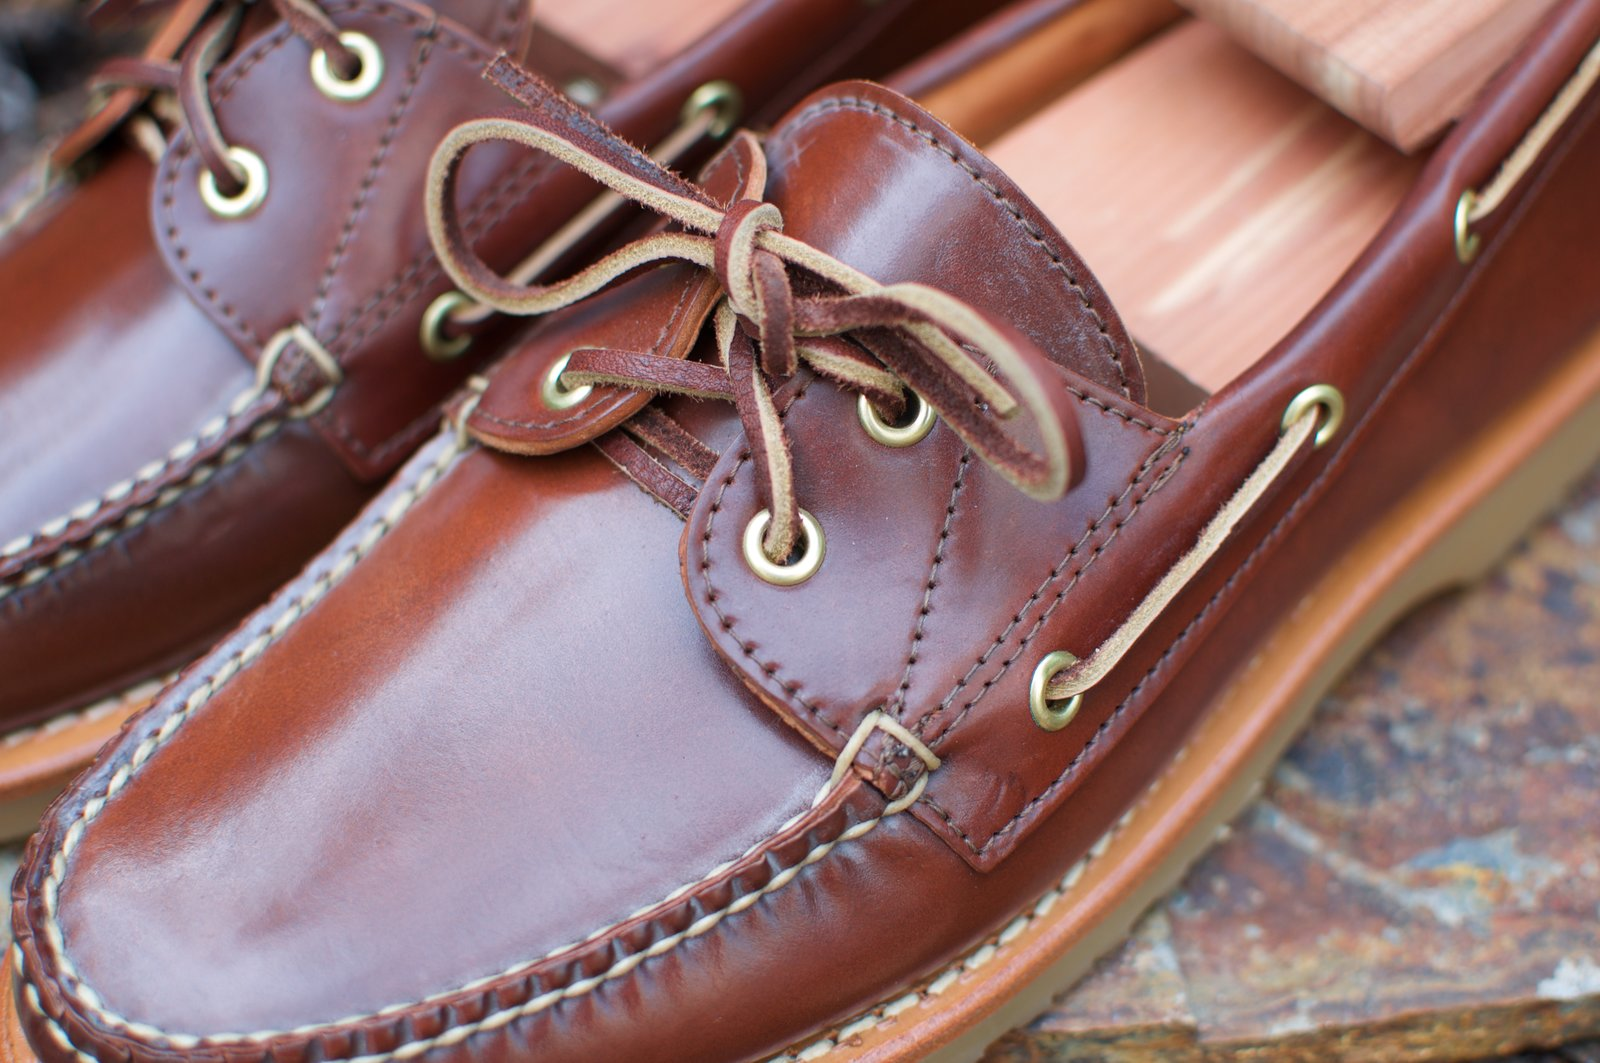 Rancourt Color 4 Shell Cordovan Boat Shoes - 2020-07-24 - 2.jpg